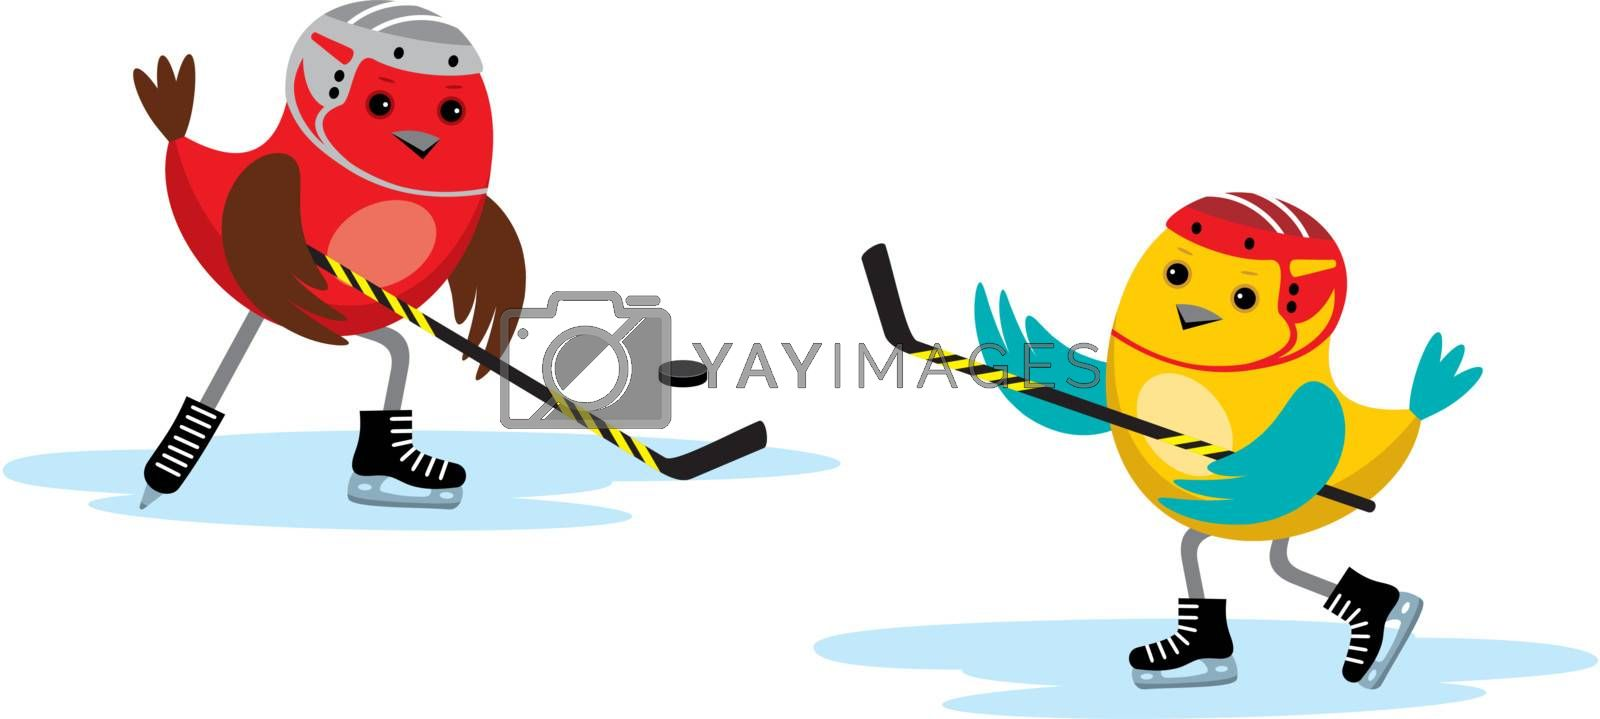 Image of birds playing in a hockey stick and puck.